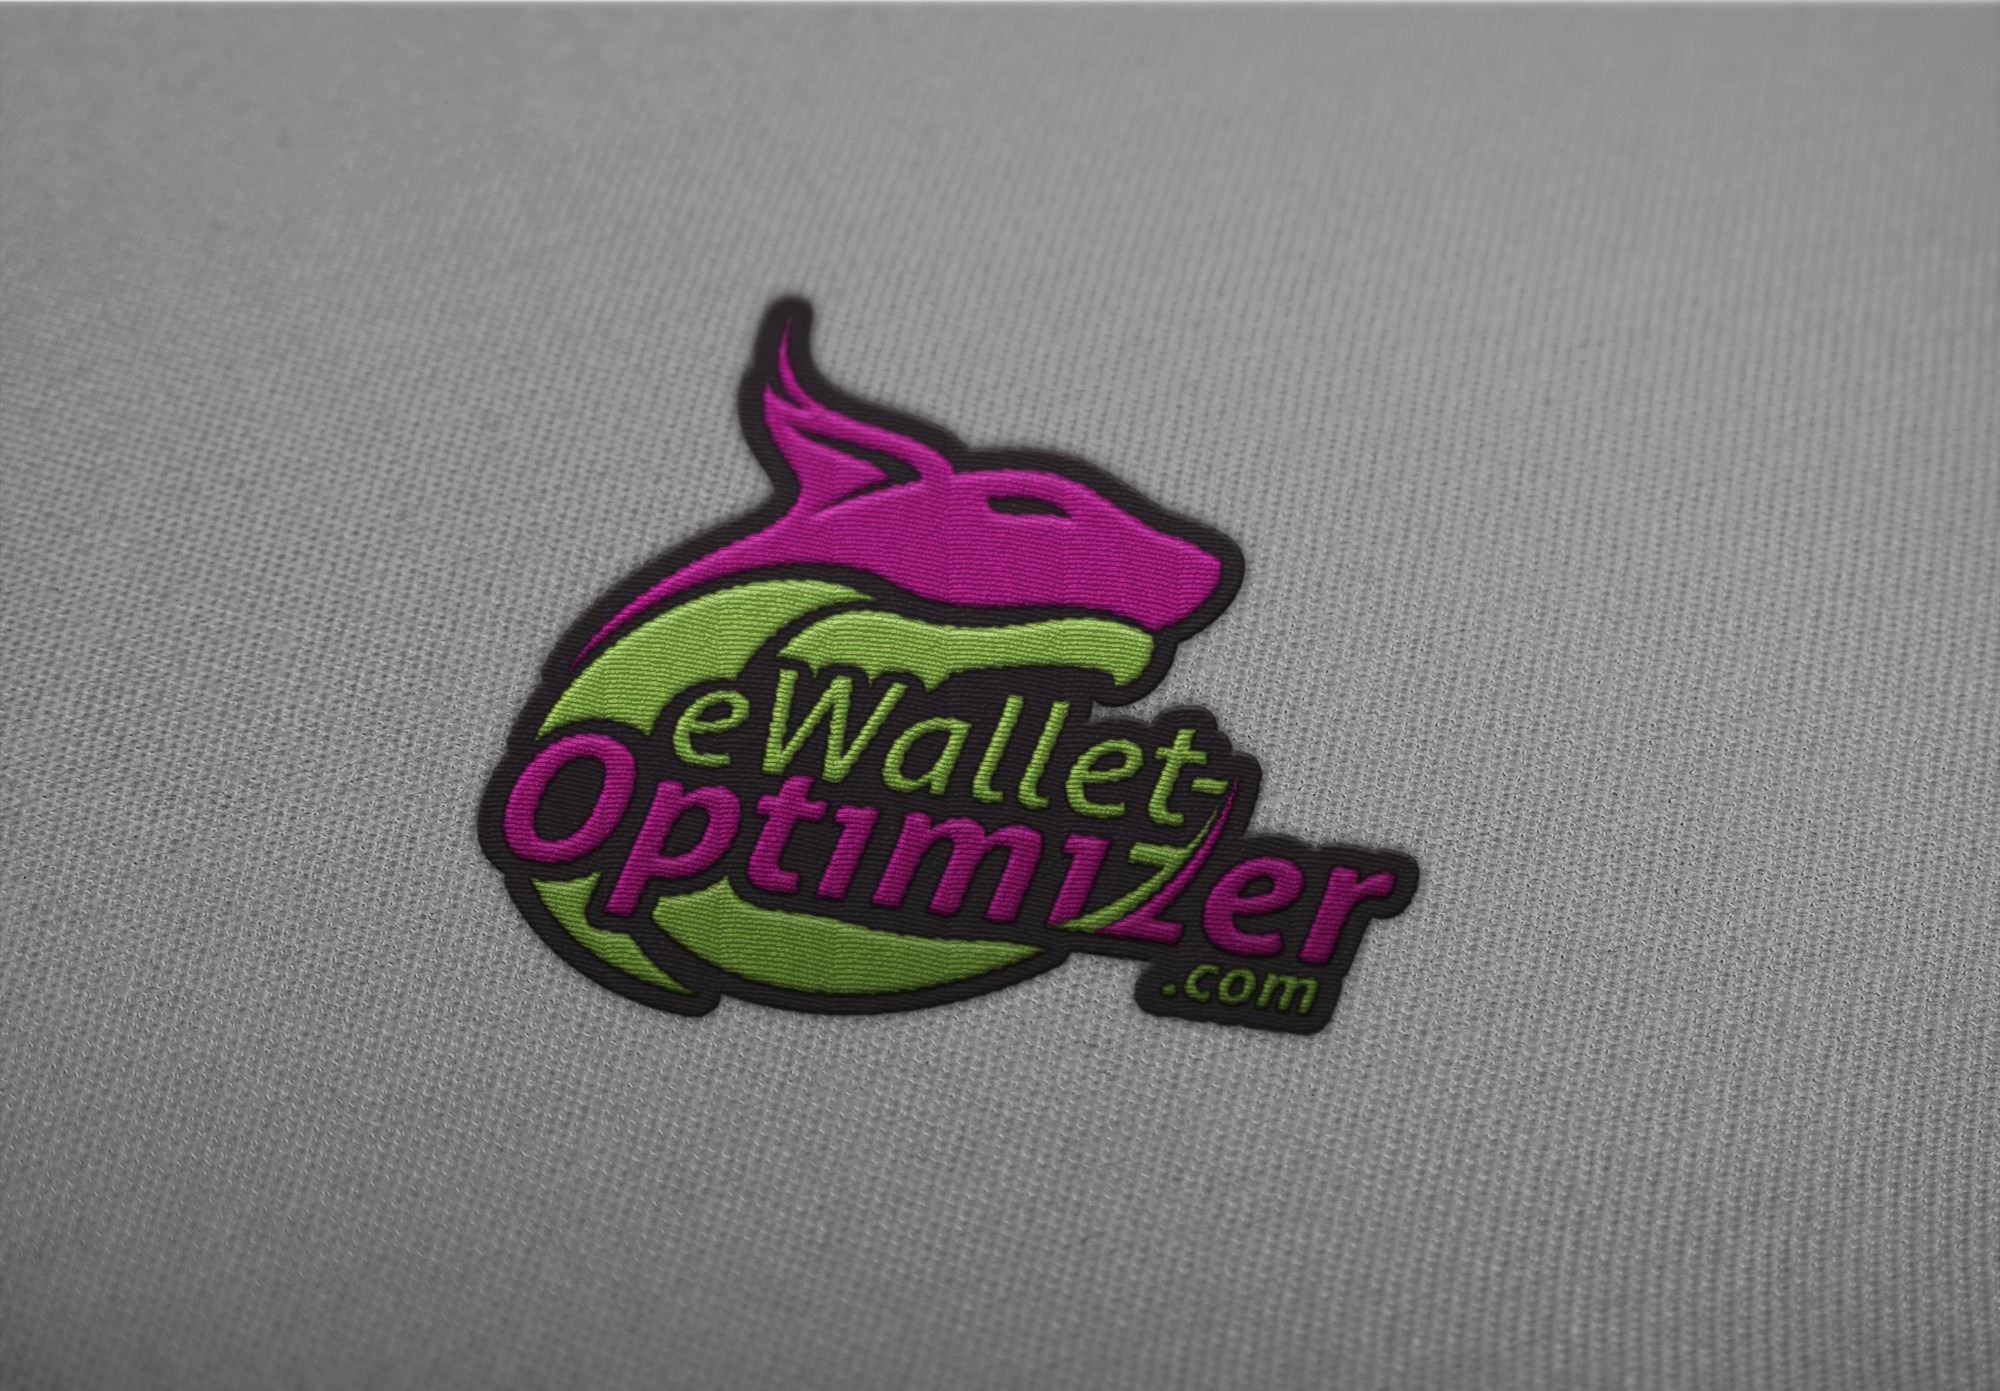 Need mind-blowing, extra-ordinary, but serious logo for our eWallet service